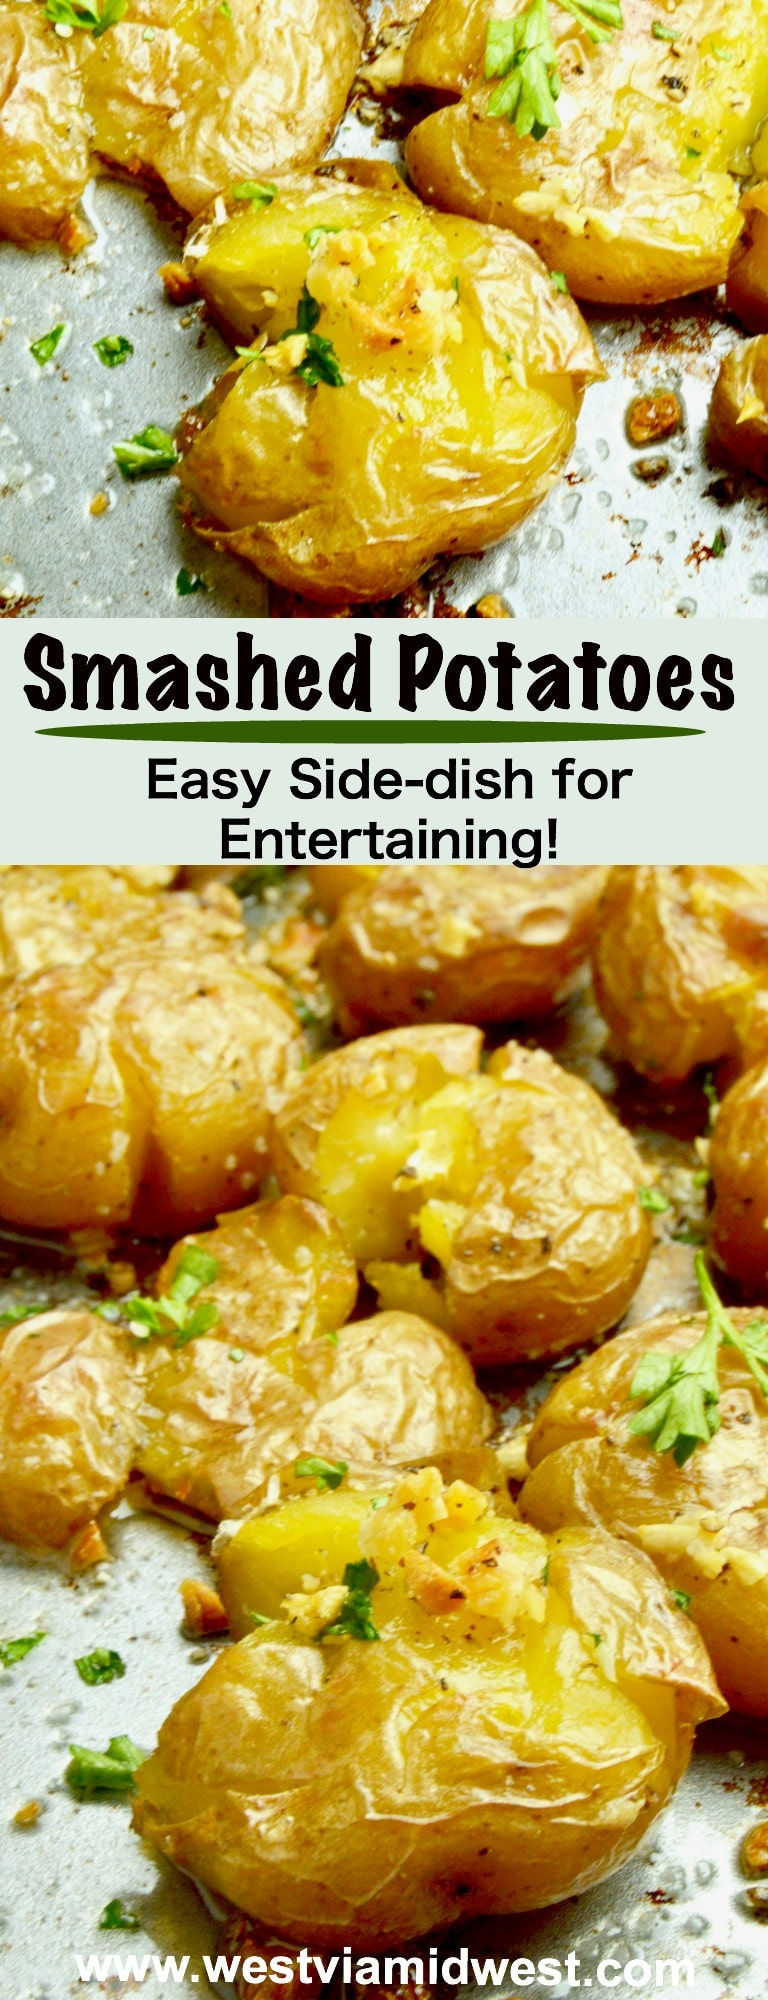 Smashed Lemon Garlic potatoes crusty crunchy on the outside, creamy inside bursting with fresh herb flavors.  A show stopping potato side dish for entertaining! westviamidwest.com #sidedish #potatoes